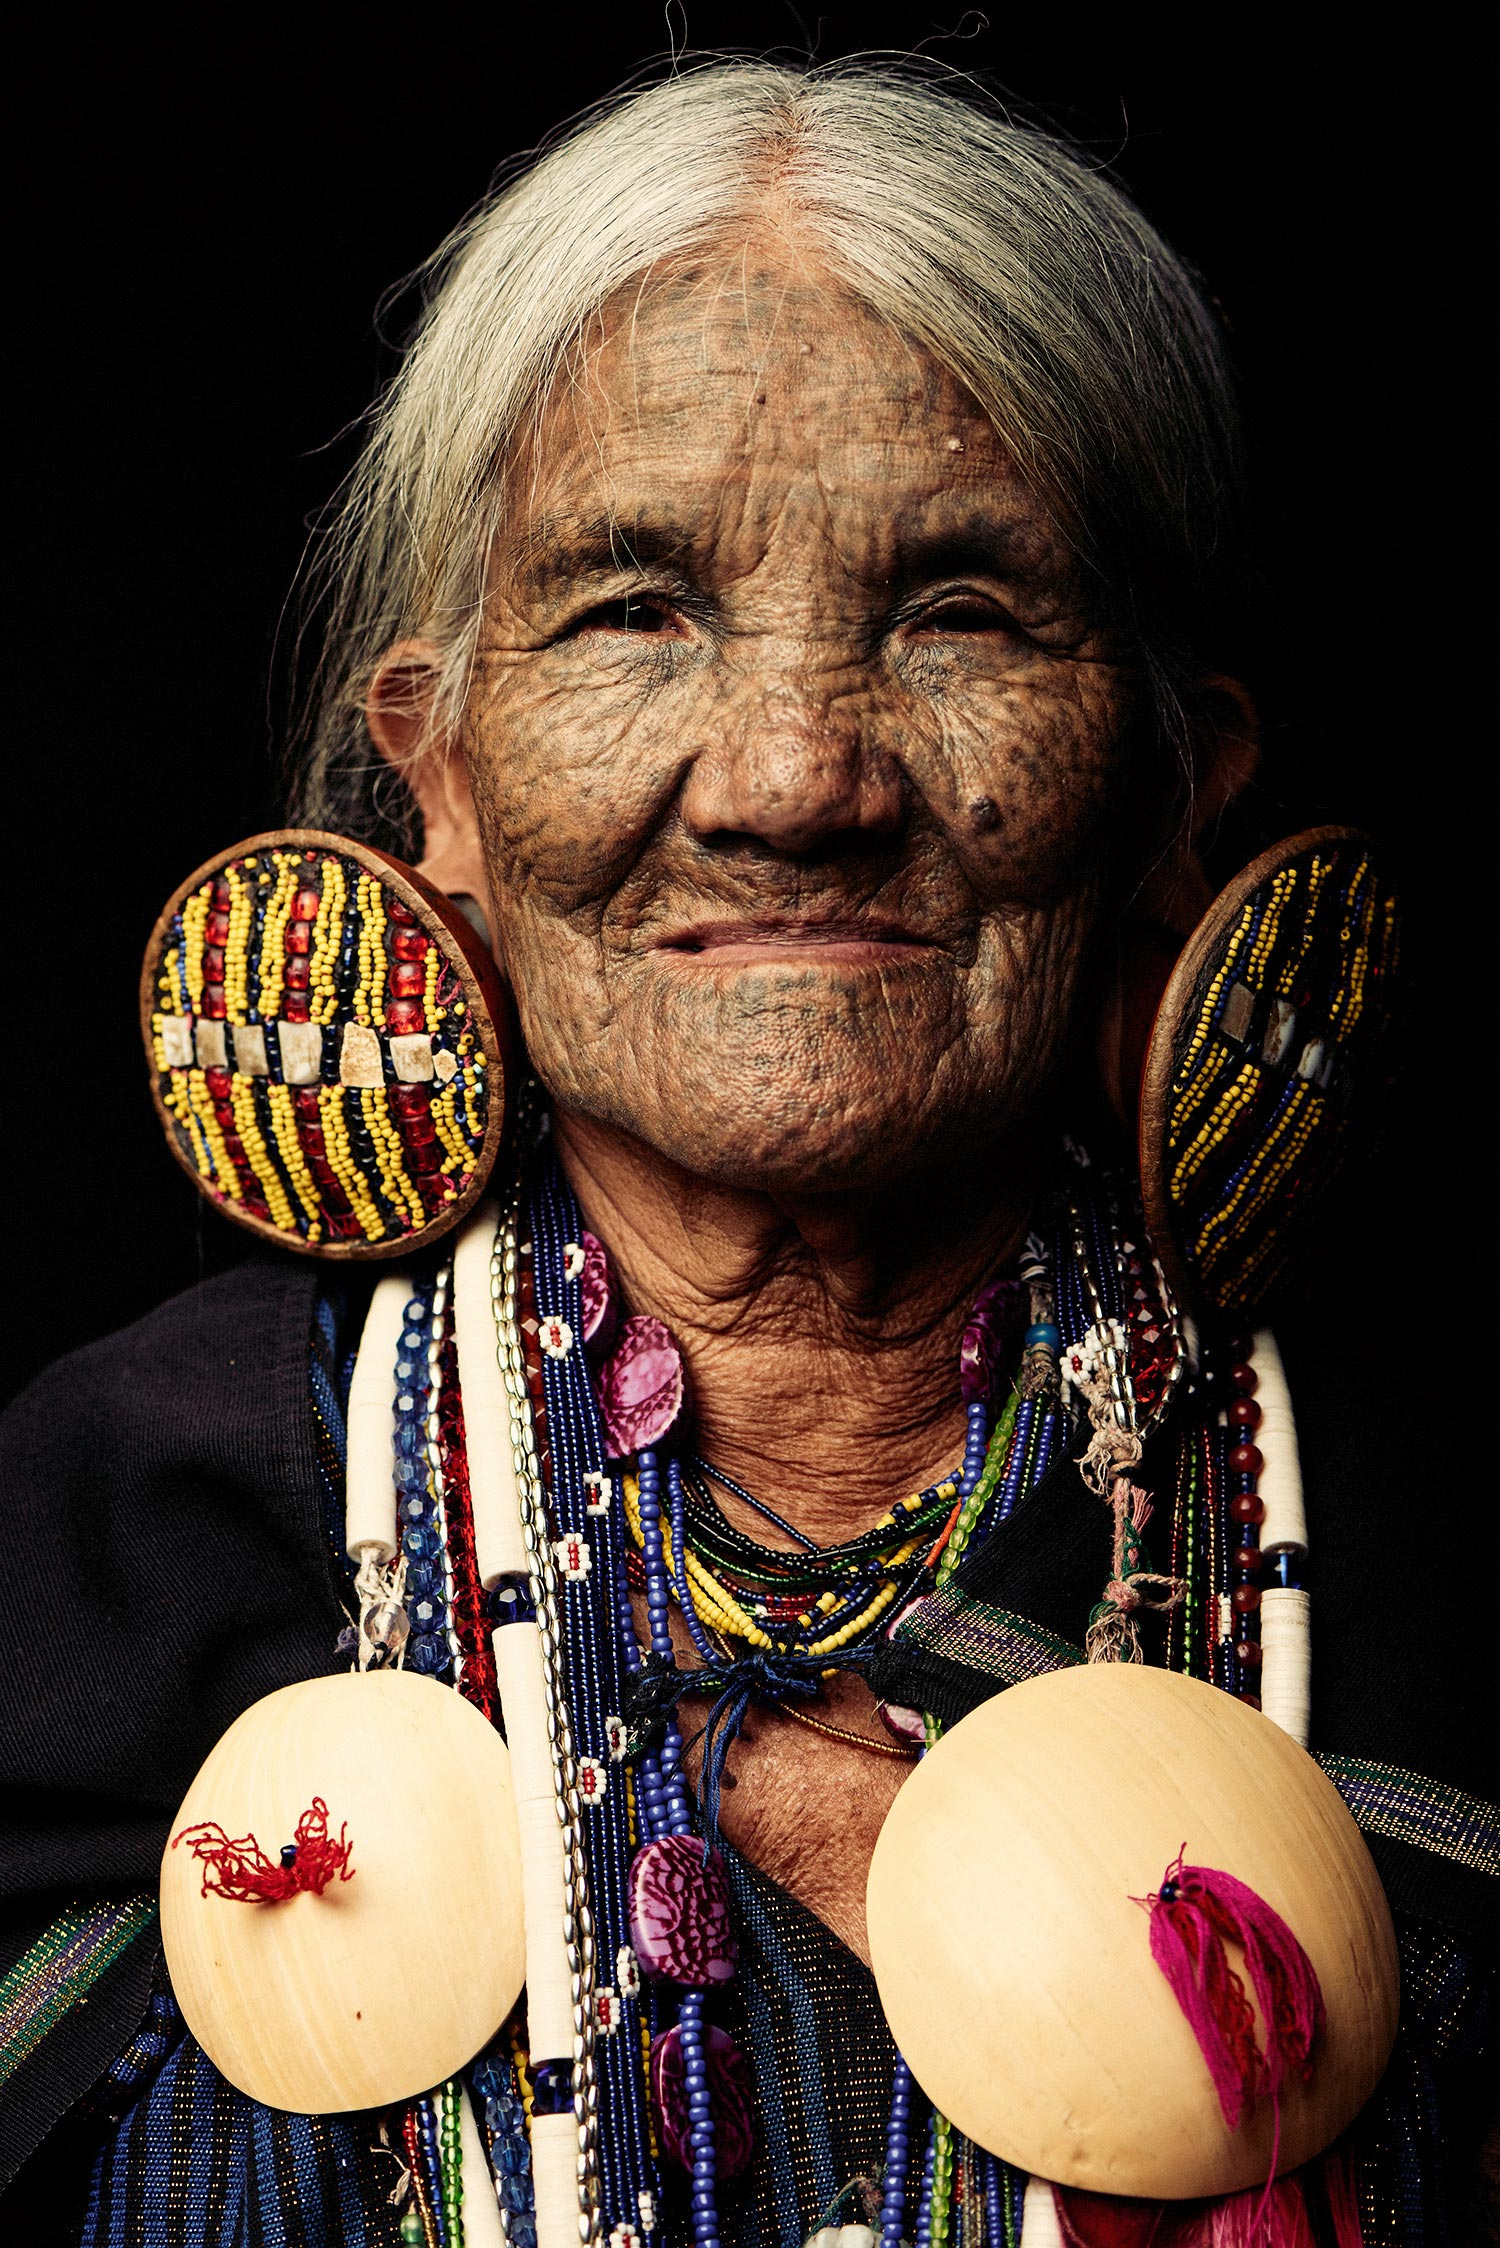 Adam Koziol - Chin tribe, earrings